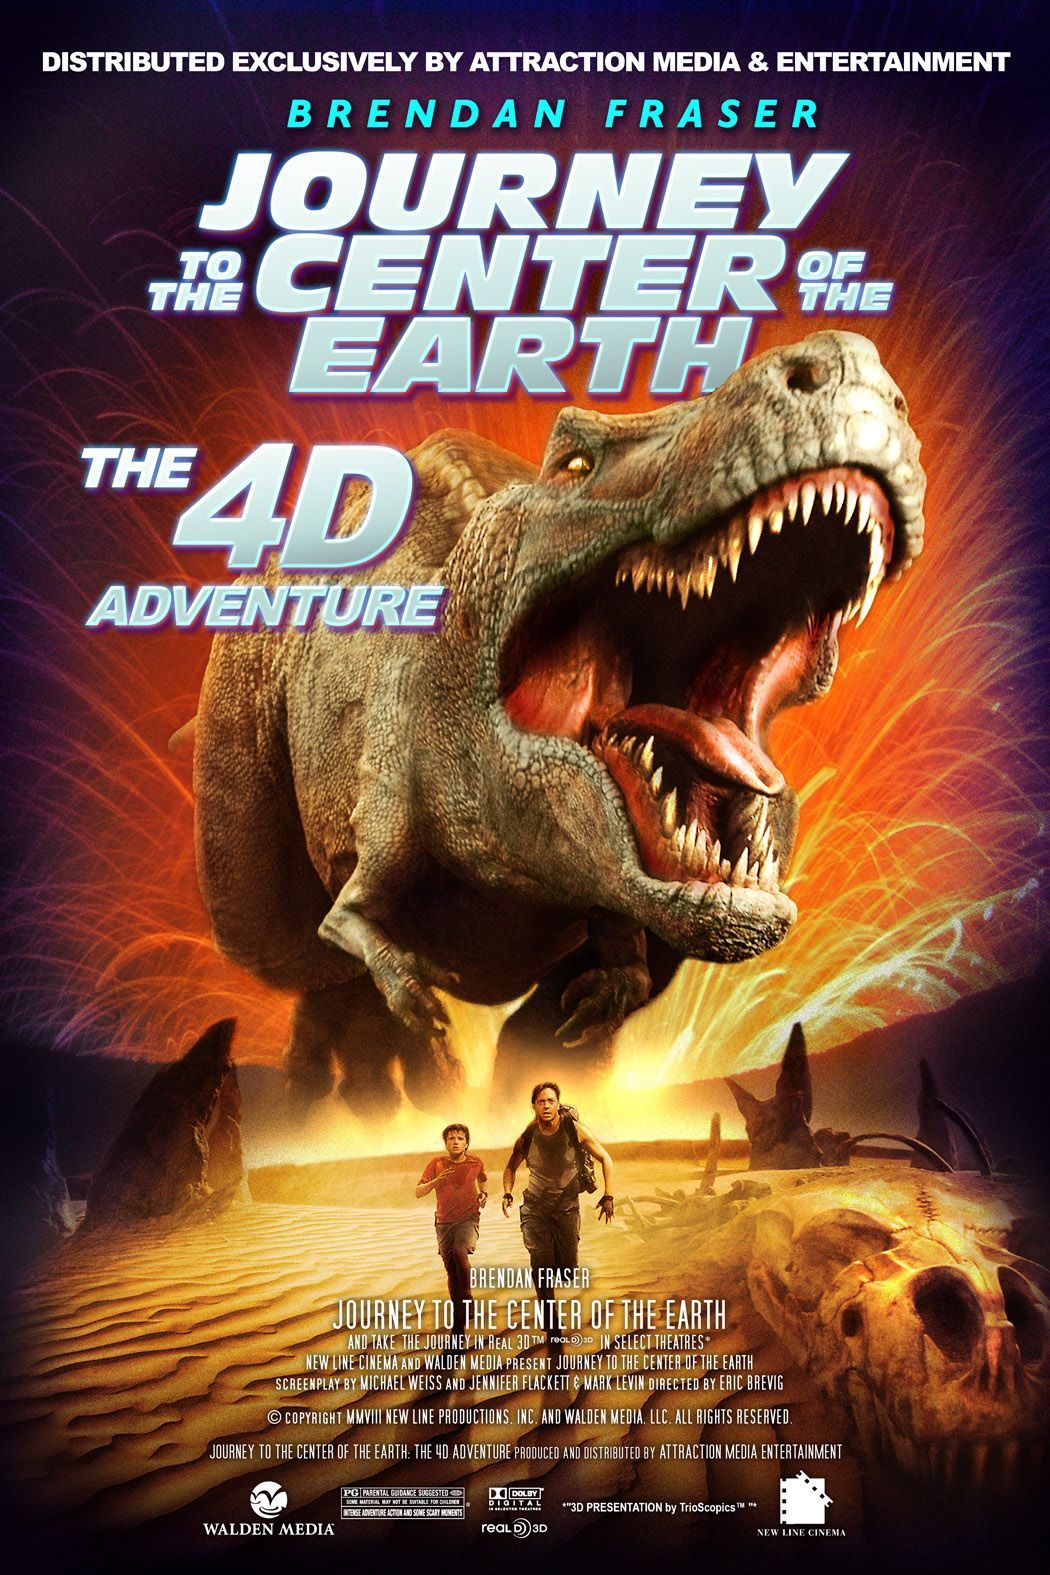 #Journey to the Center of the Earth #4d attraction film # ...